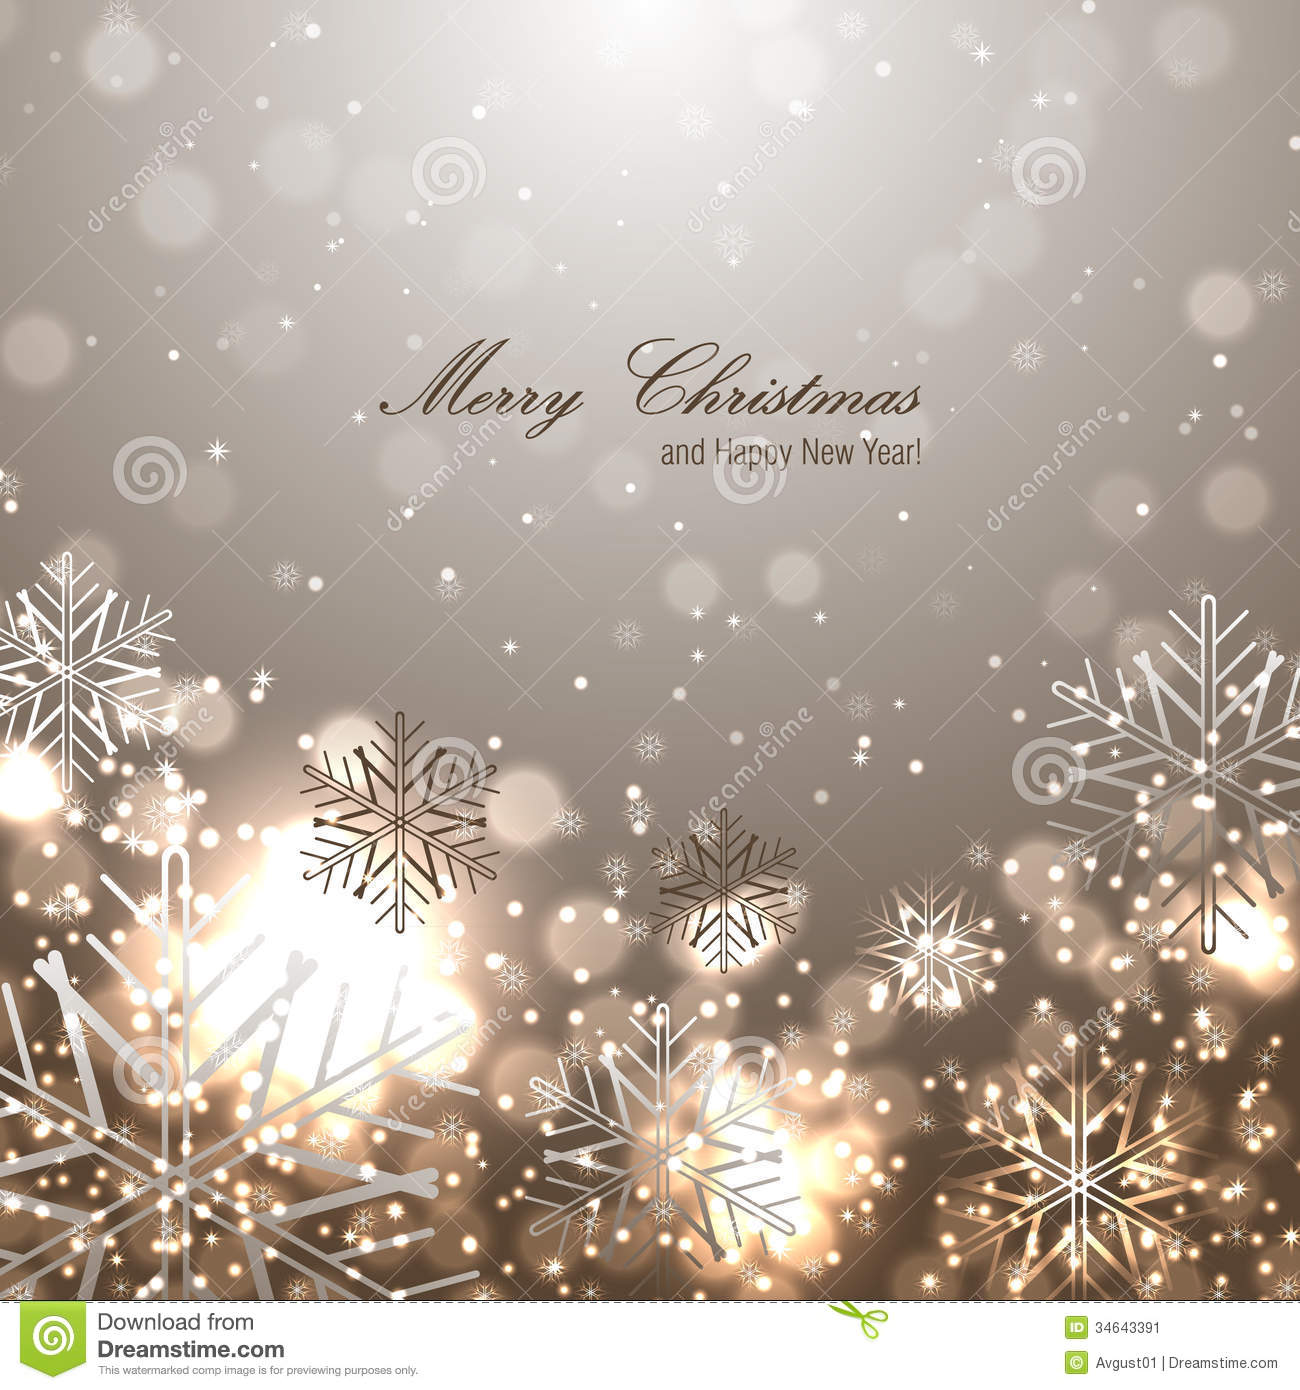 Beautiful Christmas Background.Beautiful Christmas Background With Snowflakes Stock Vector